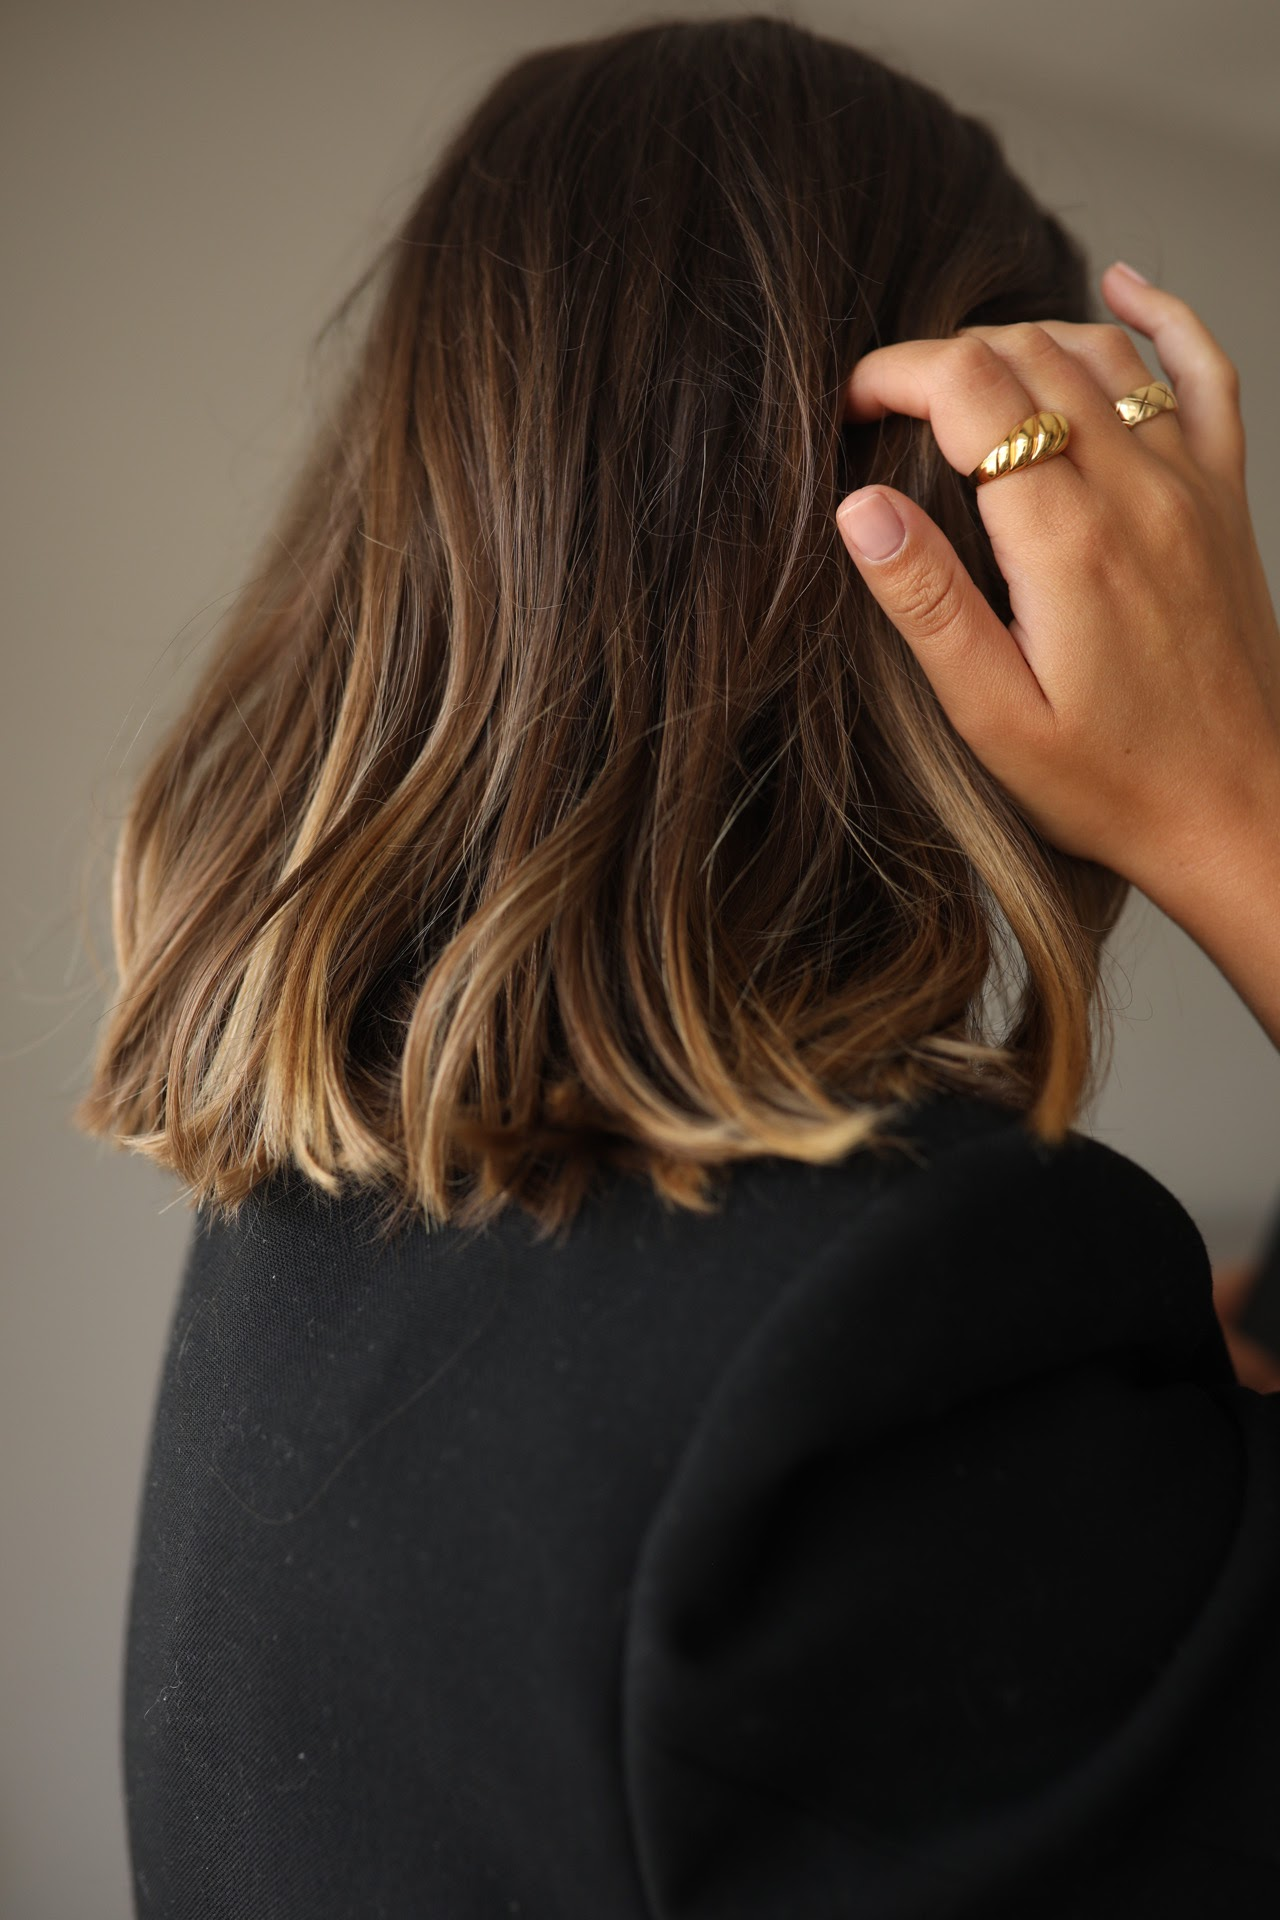 HOW I GET MY TEXTURED WAVES USING STRAIGHTENERS